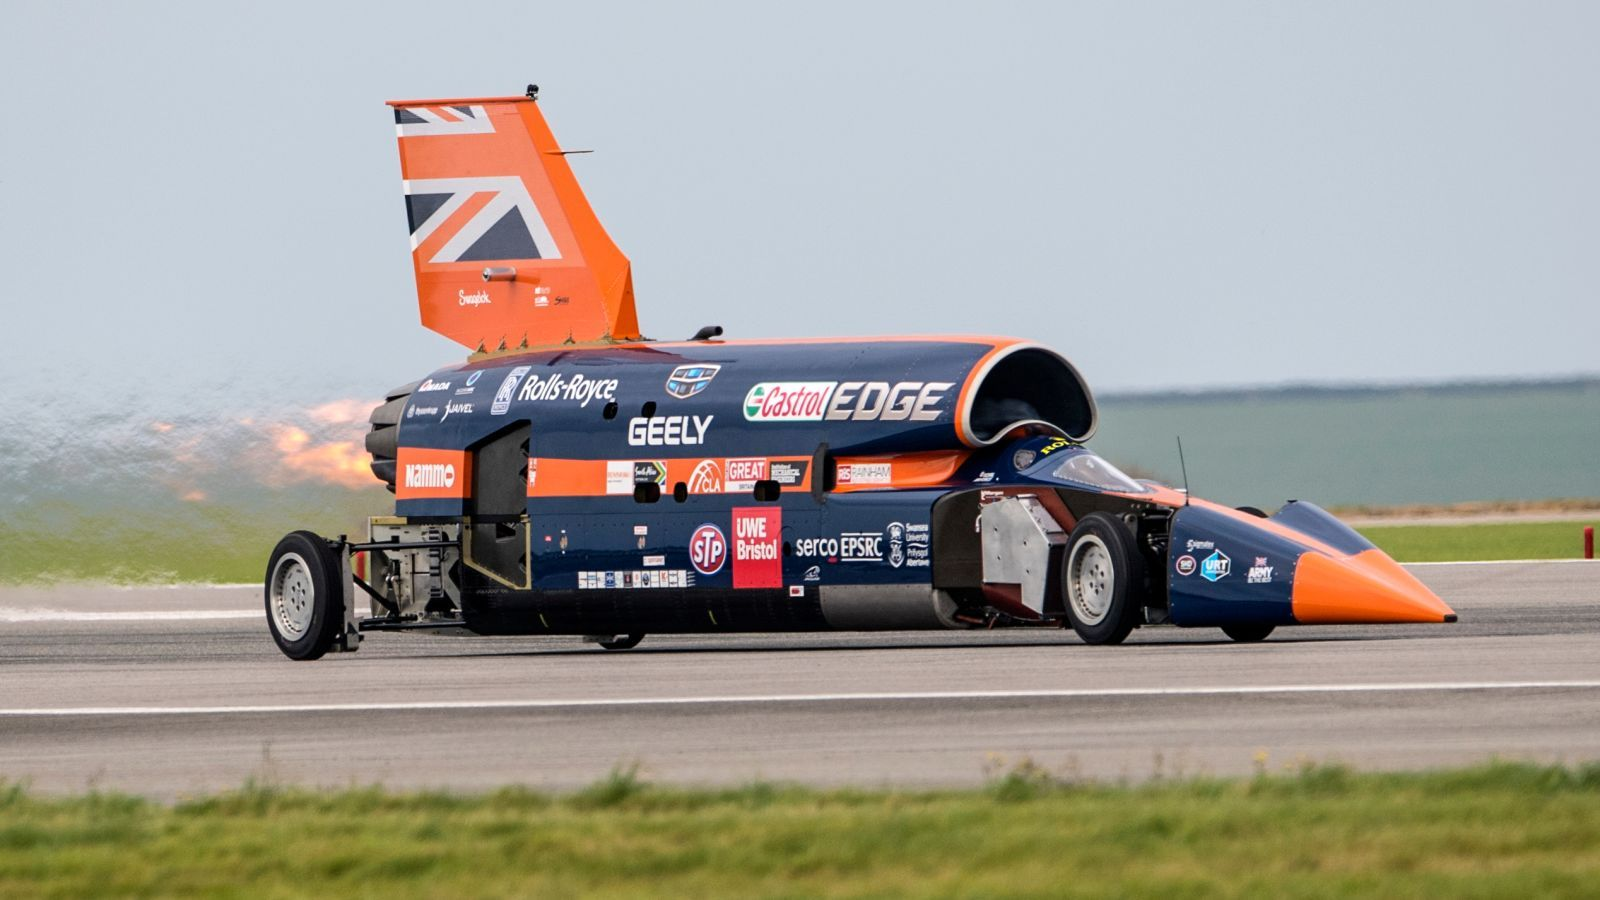 The Bloodhound Supersonic Car Project Is Back On And Going For The Land Speed Record Car Projects Car Bloodhound